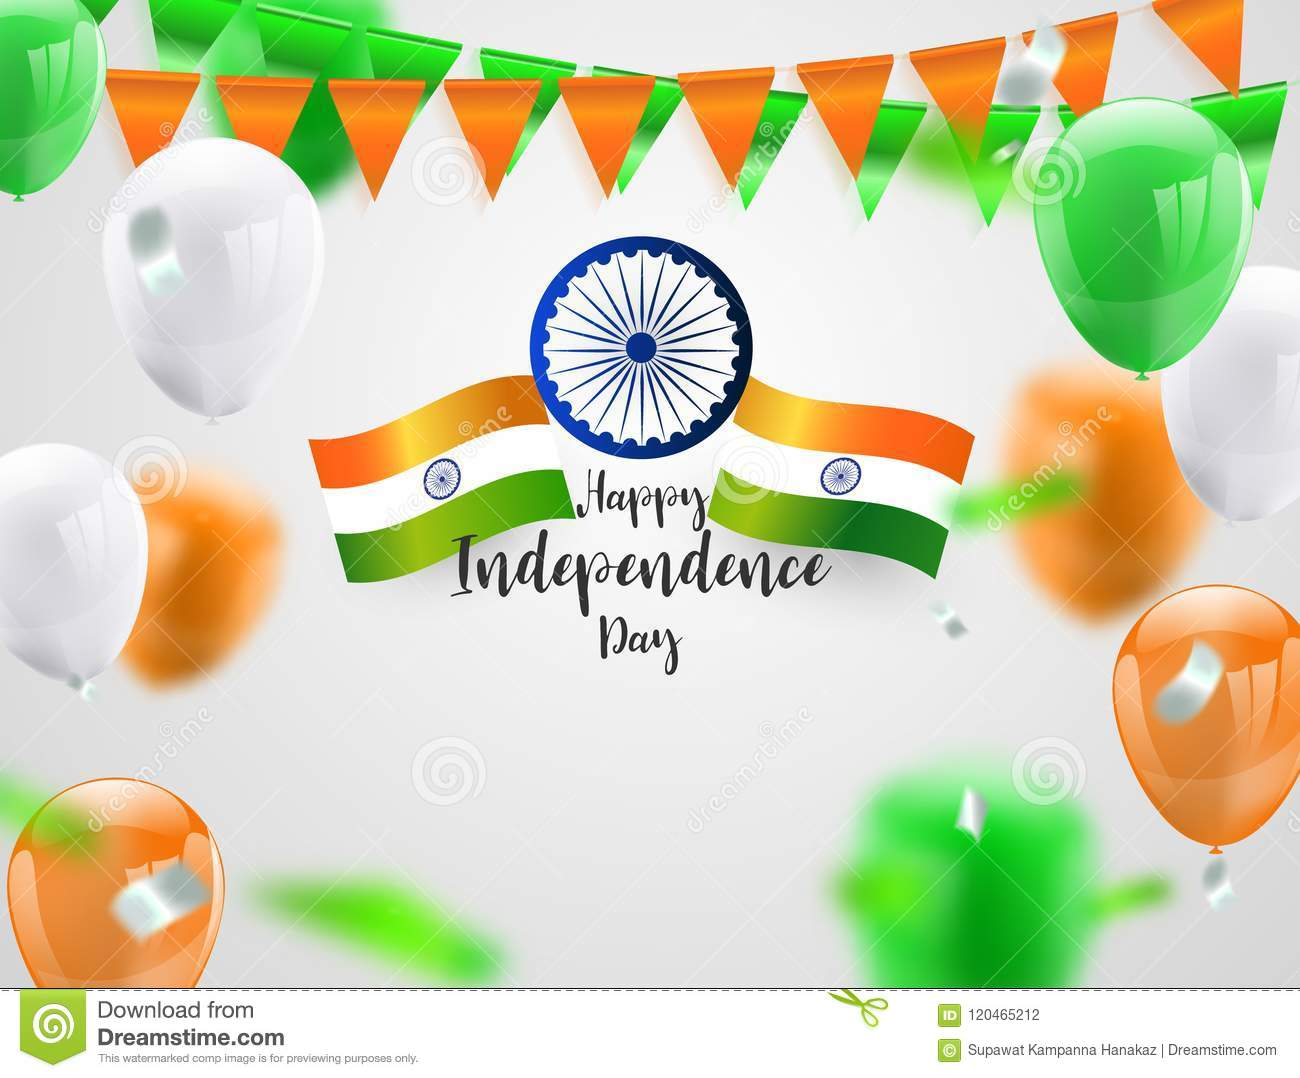 Green Orange balloons, confetti concept design Independence Day India Graphics. greeting background. Celebration Vector illustrat